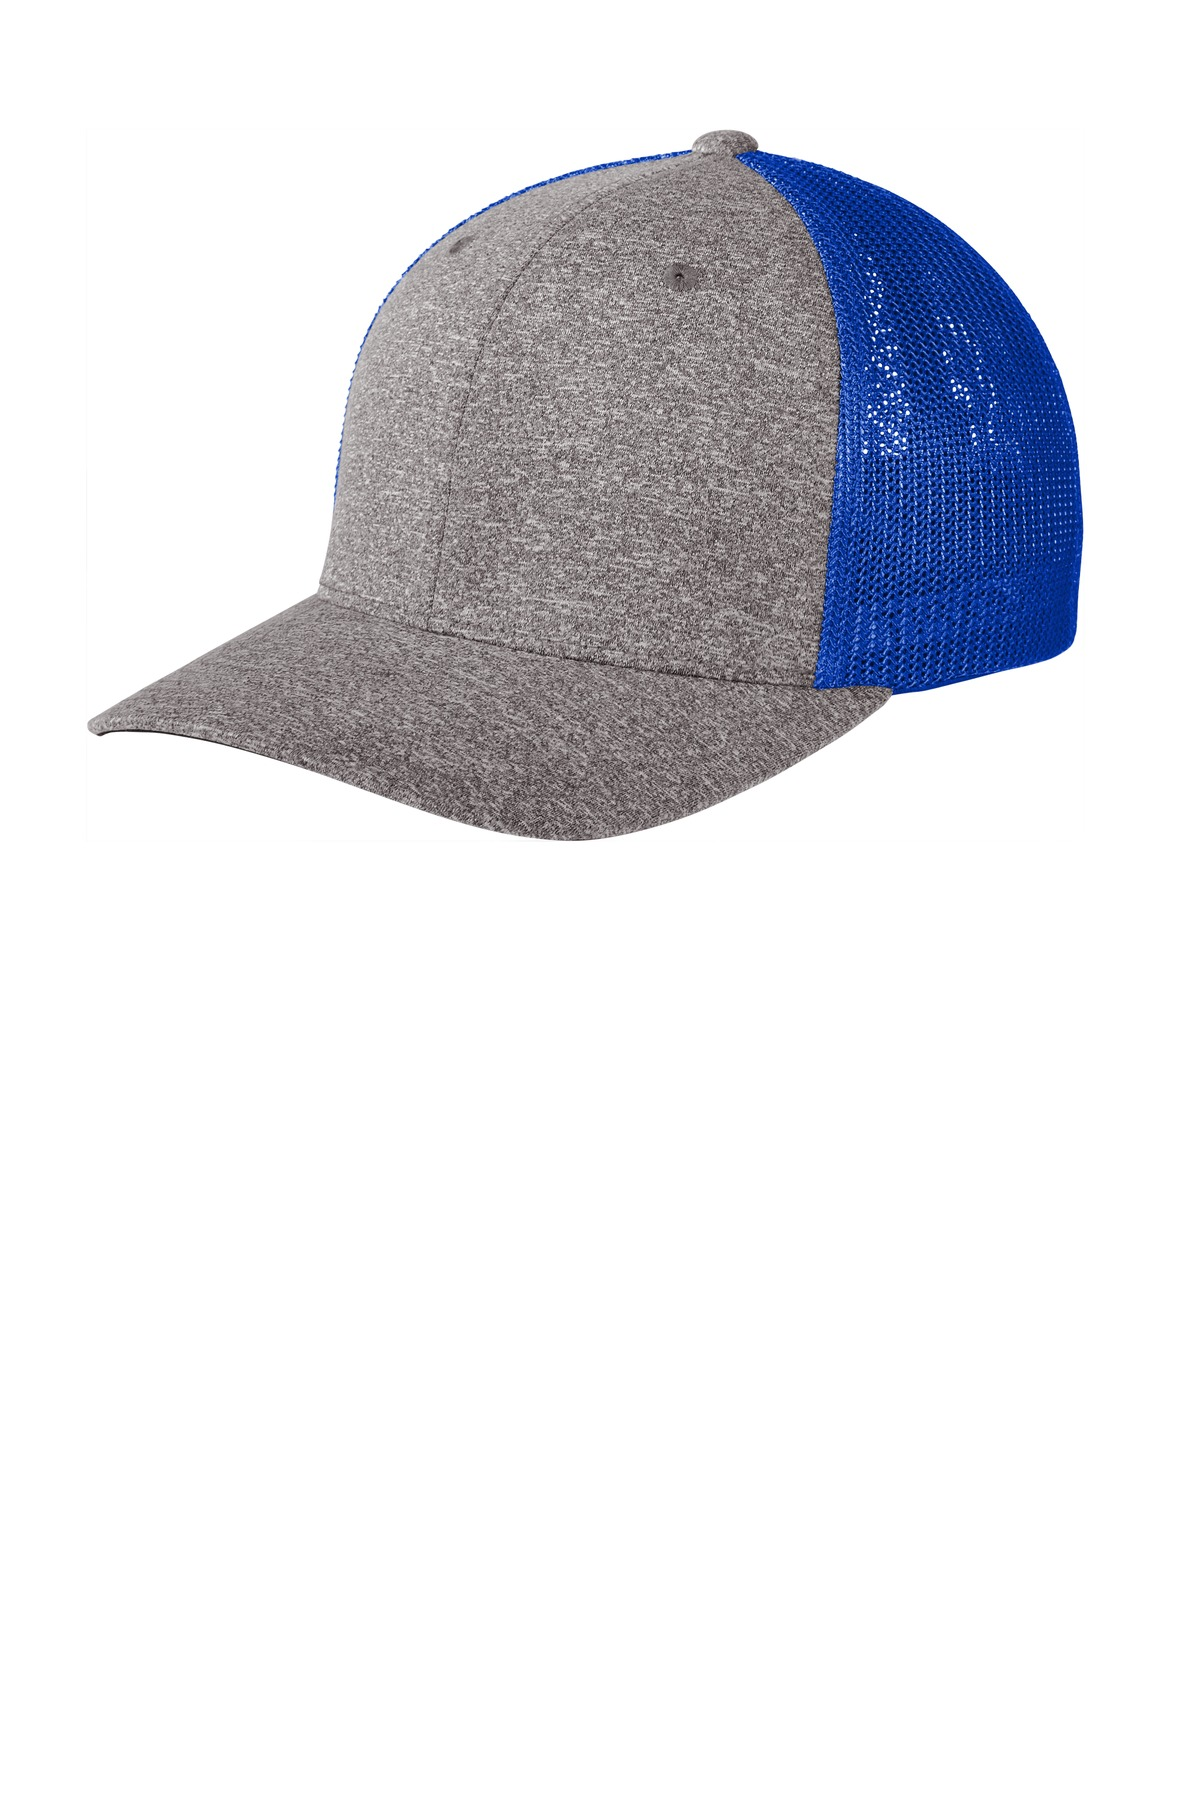 Port Authority  ®  Flexfit  ®  Melange Mesh Back Trucker Cap C302 - True Royal/ Grey Heather